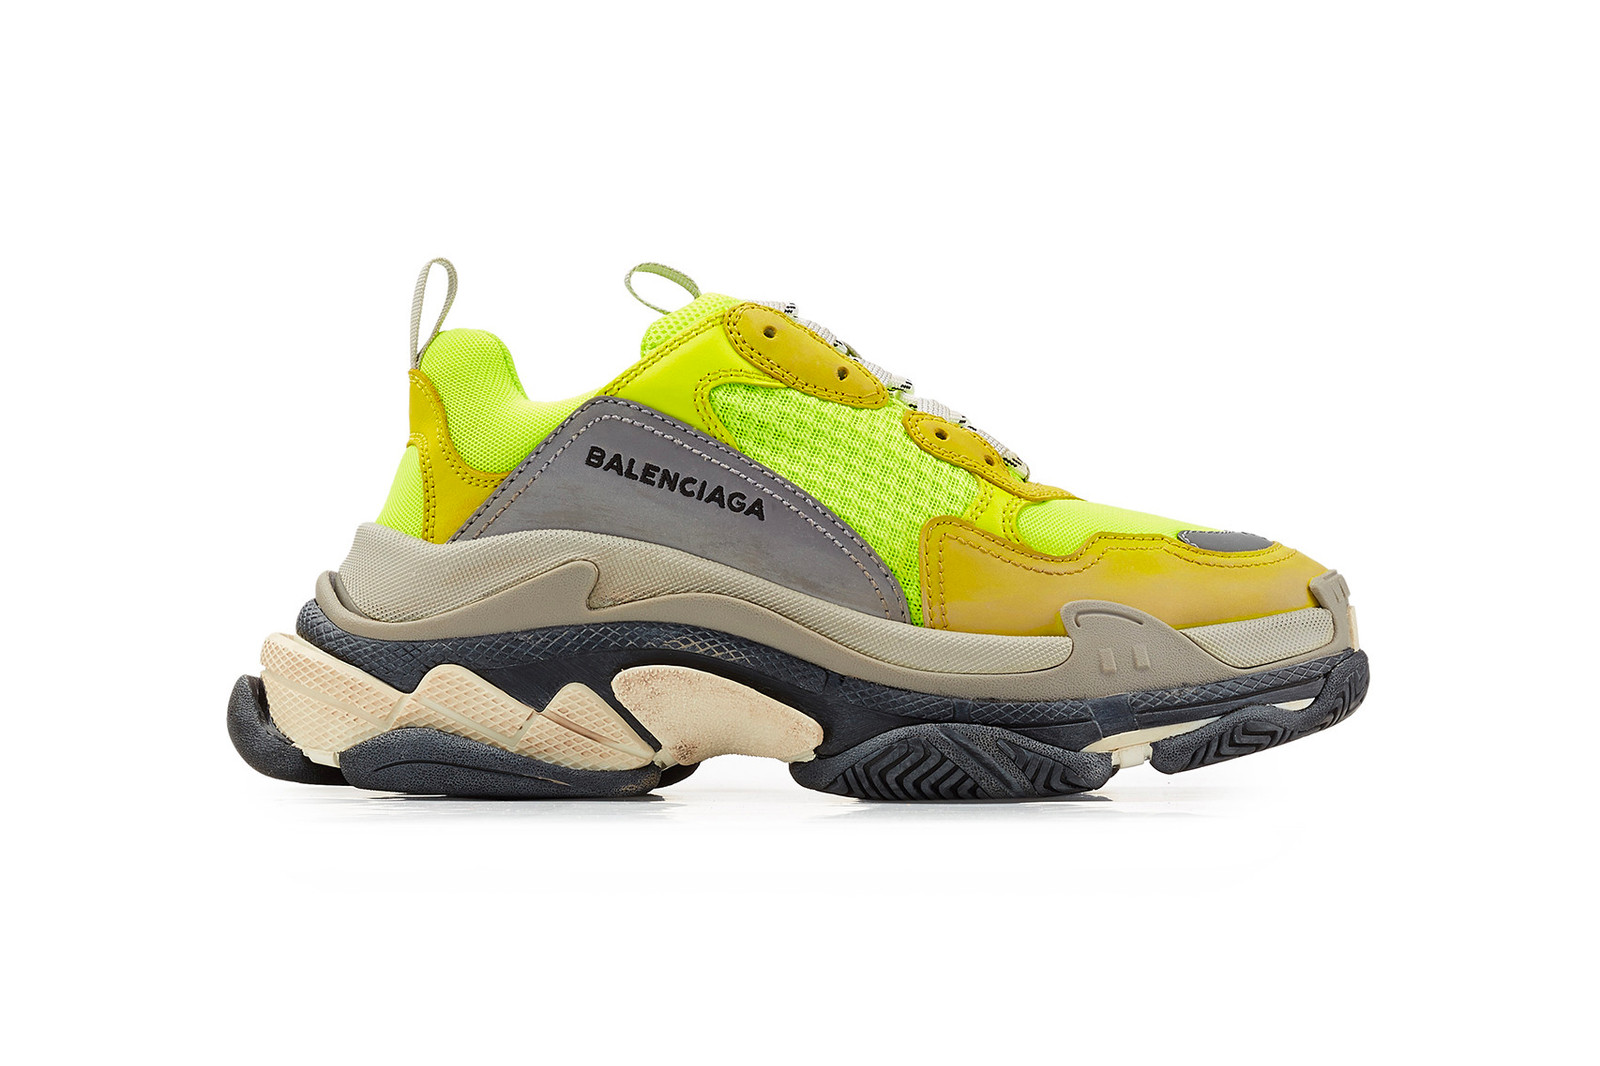 6a08e1d33d6db Nike The 1 Reimagined Spring 2018 Colorways Orange Yellow Purple Violet  Mist Blue Green Jester Rebel. Stylebop.com. The Balenciaga Triple-S  continued ...